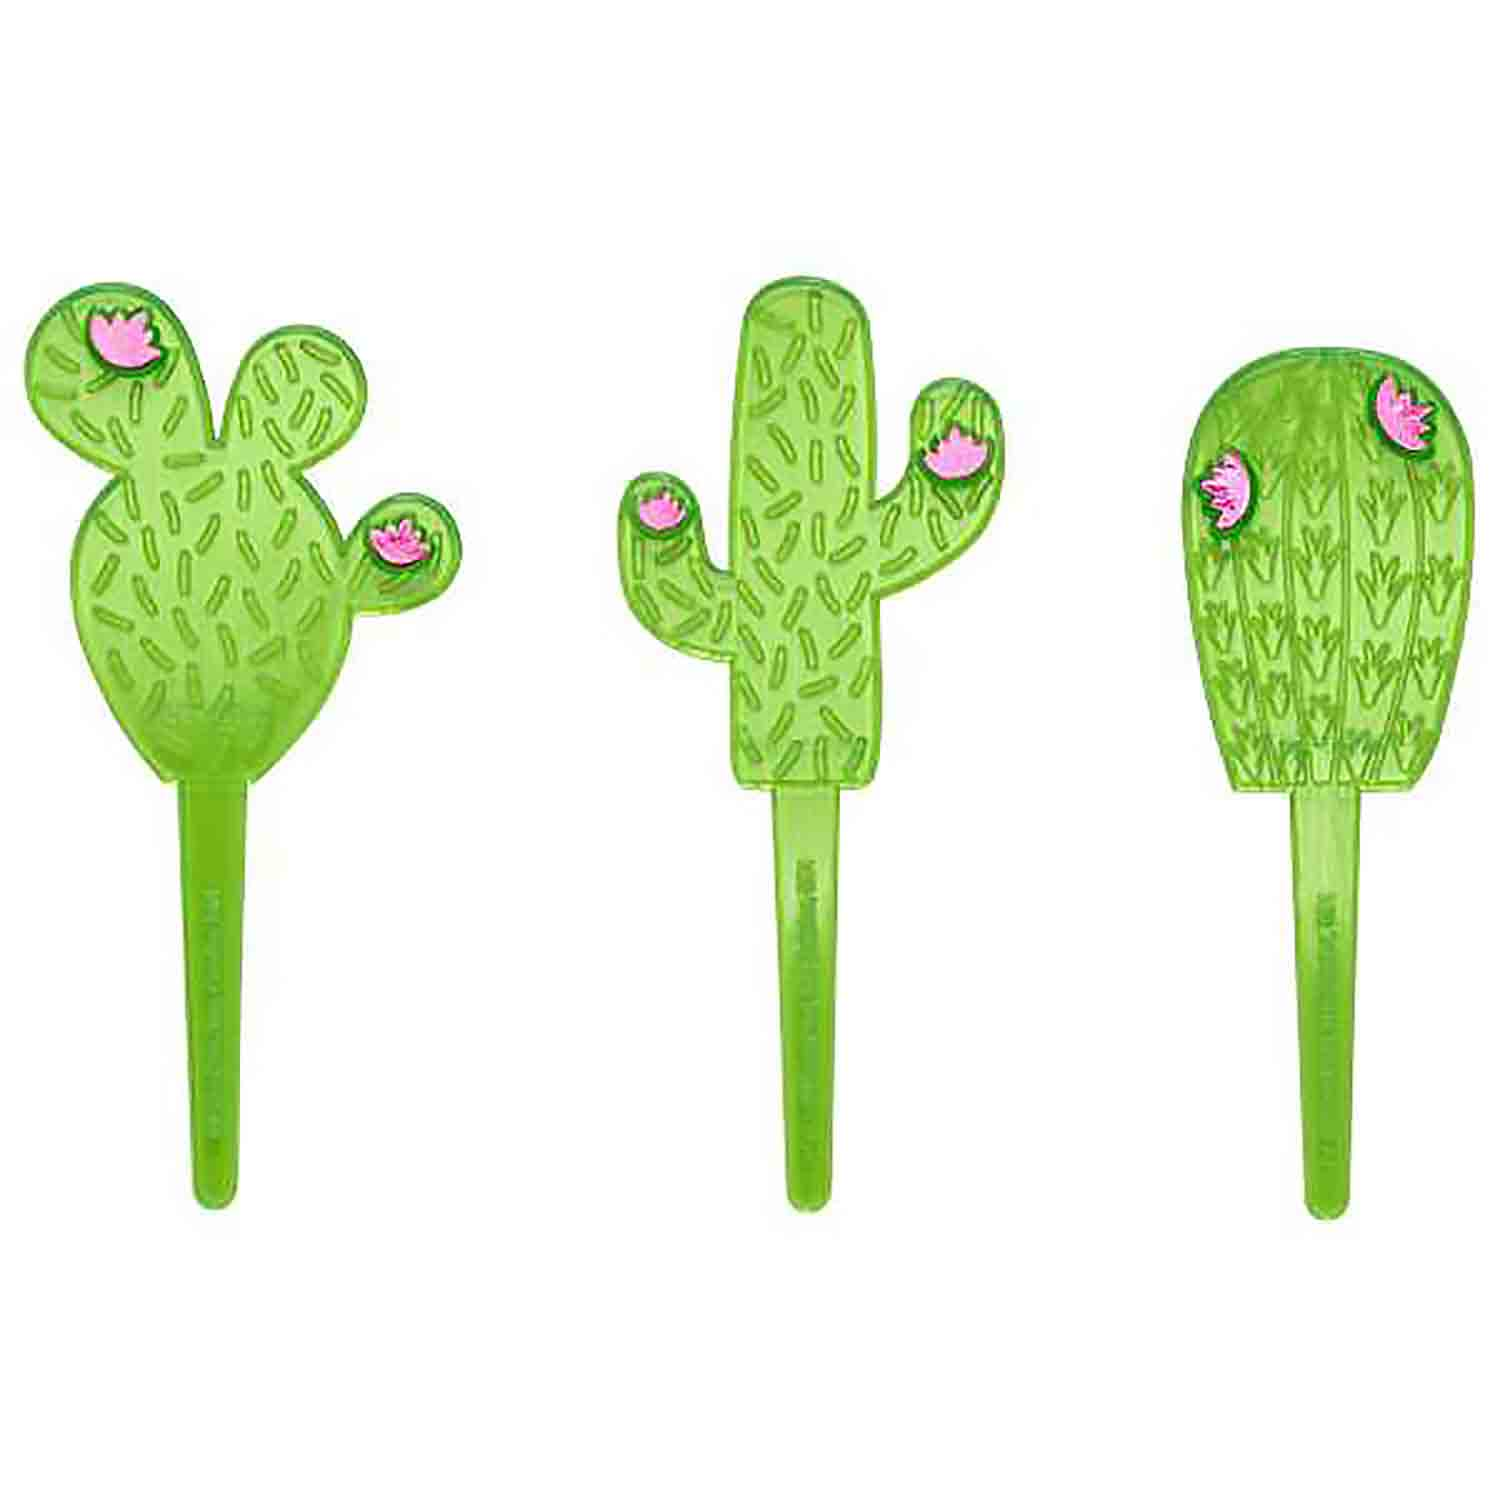 Cactus Assortment Picks